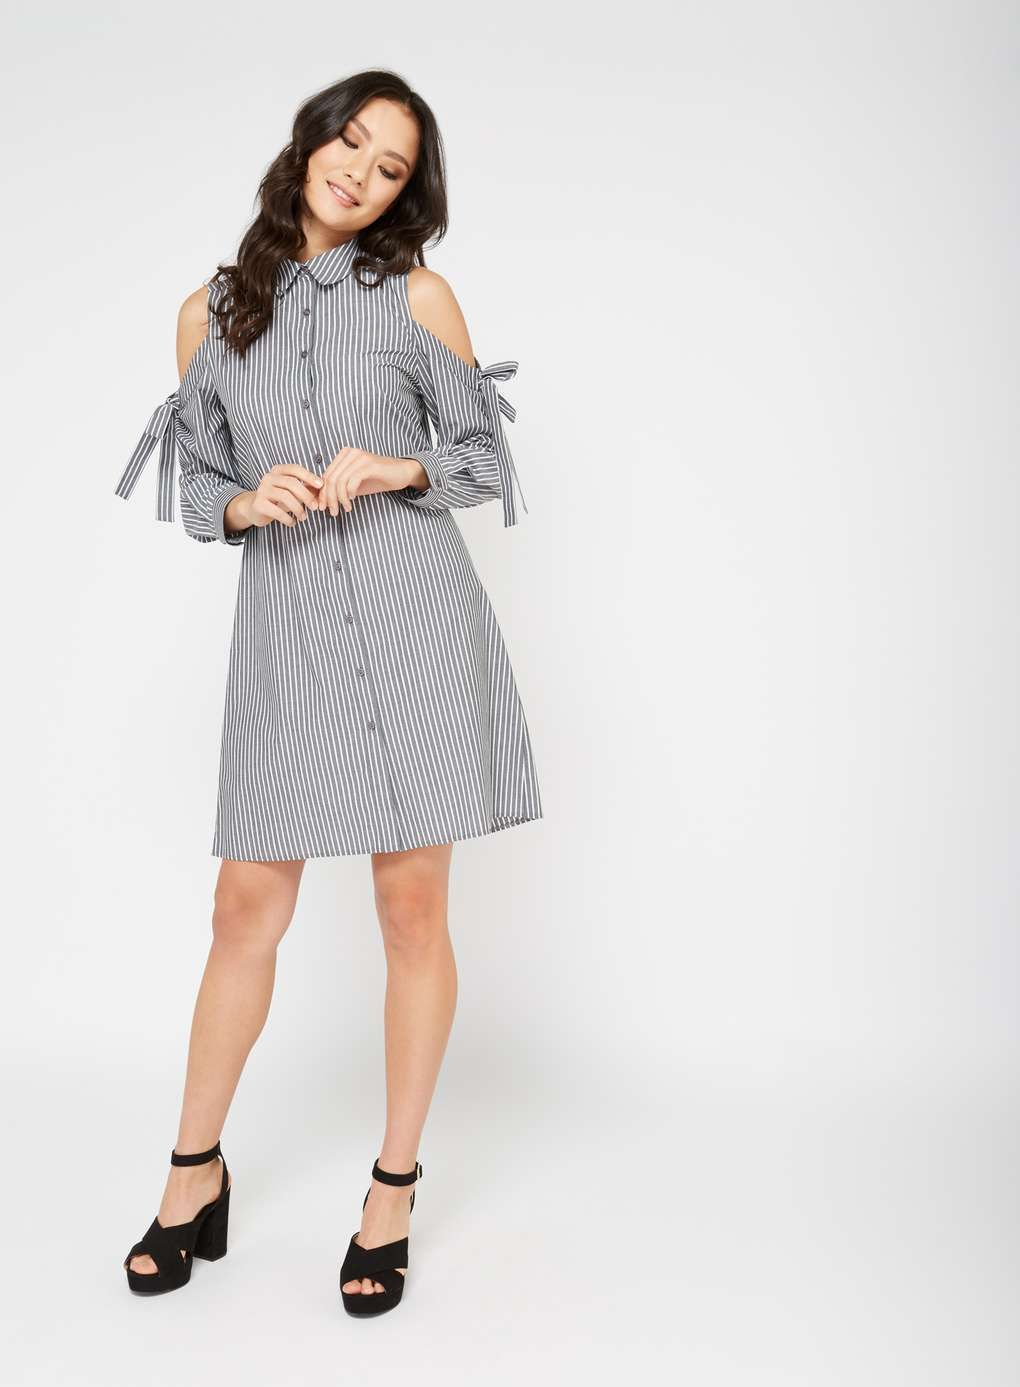 39c28482778d14 Striped Cold Shoulder Shirt Dress - View All - Sale   Offers - Miss  Selfridge US